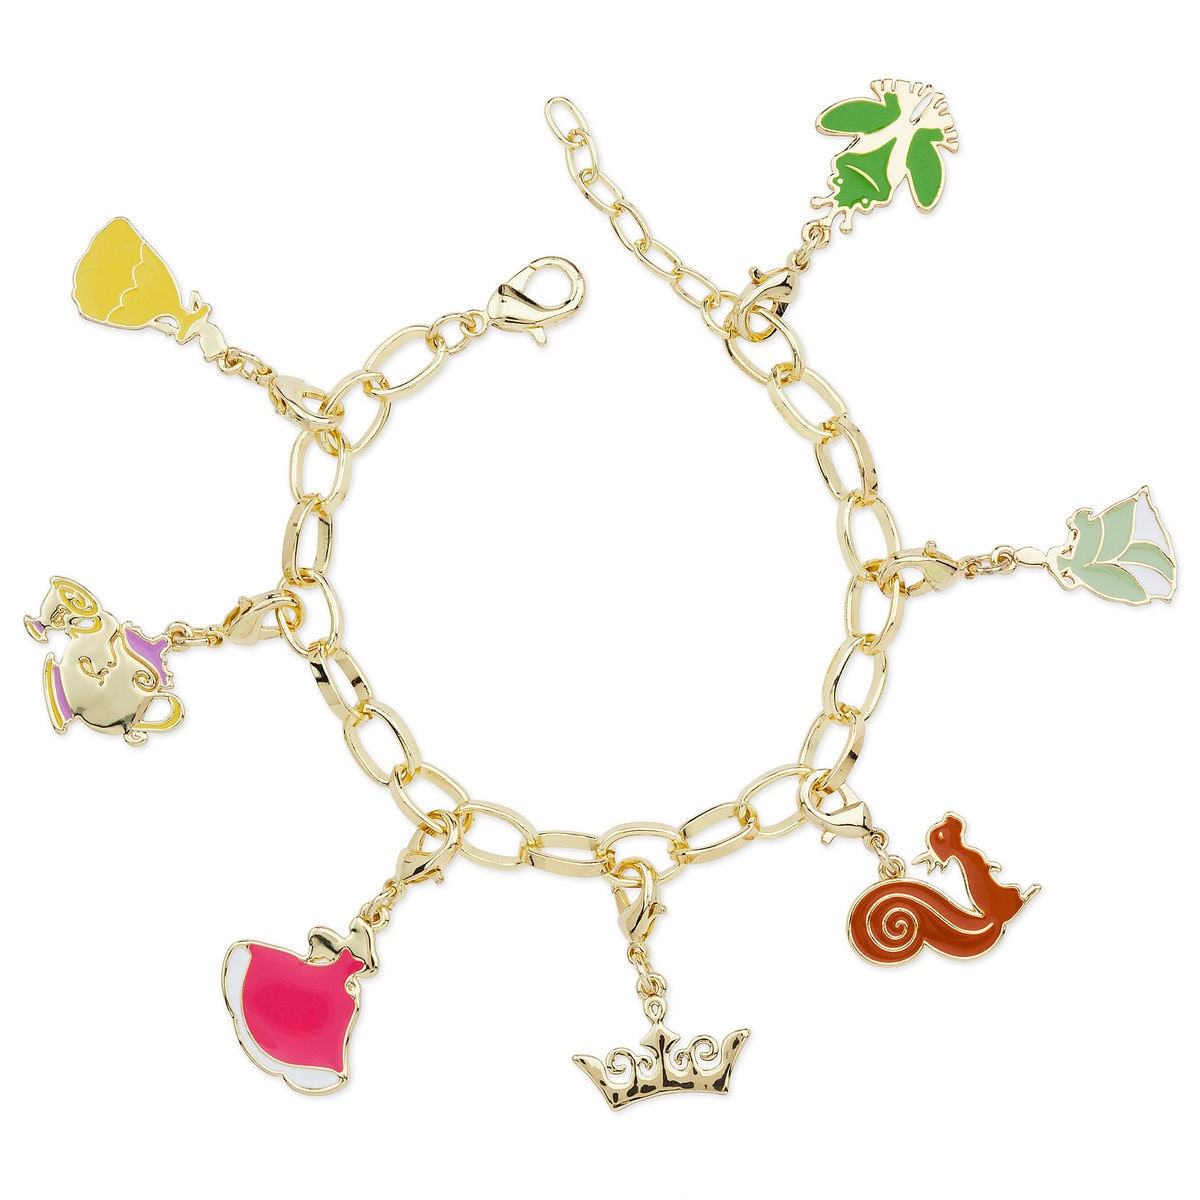 Product Image Of Disney Princess Charm Bracelet For Kids 1